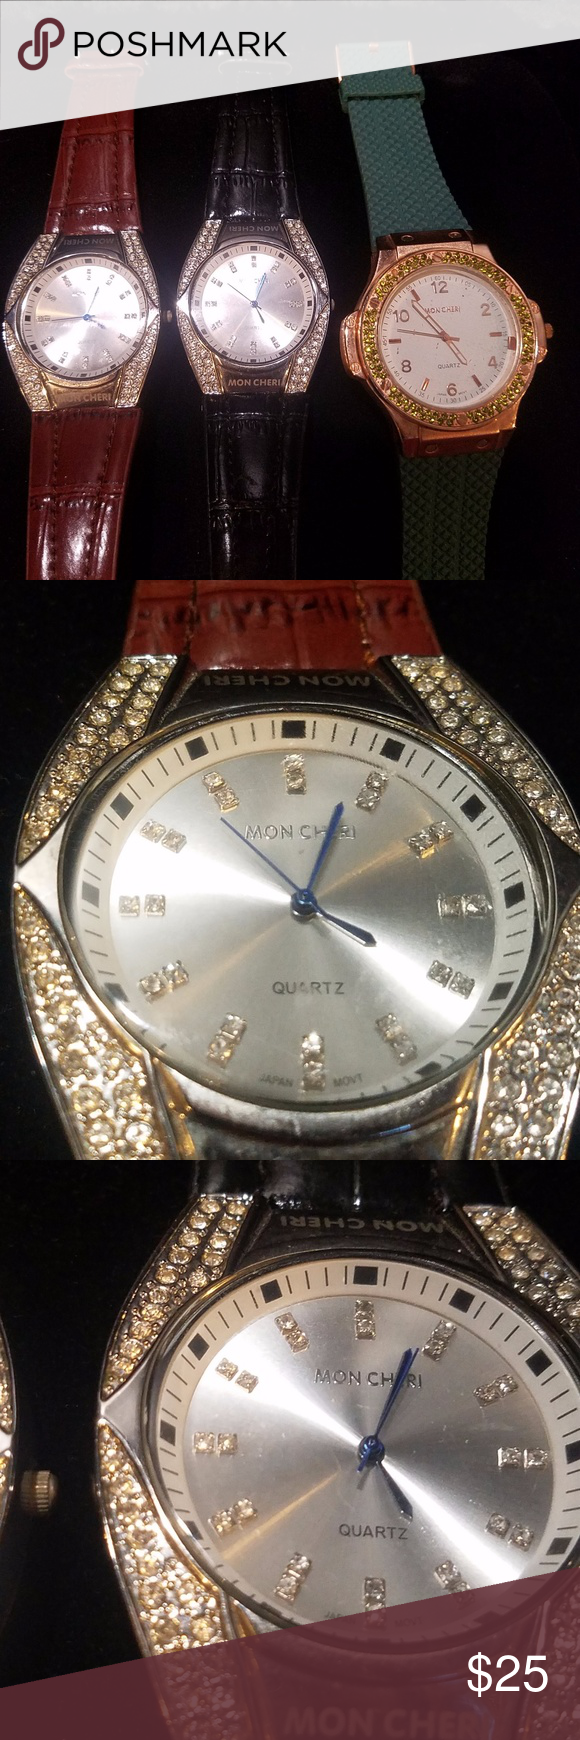 Mon Cheri watch lot You are buying a lot of 3 Mon Cheri